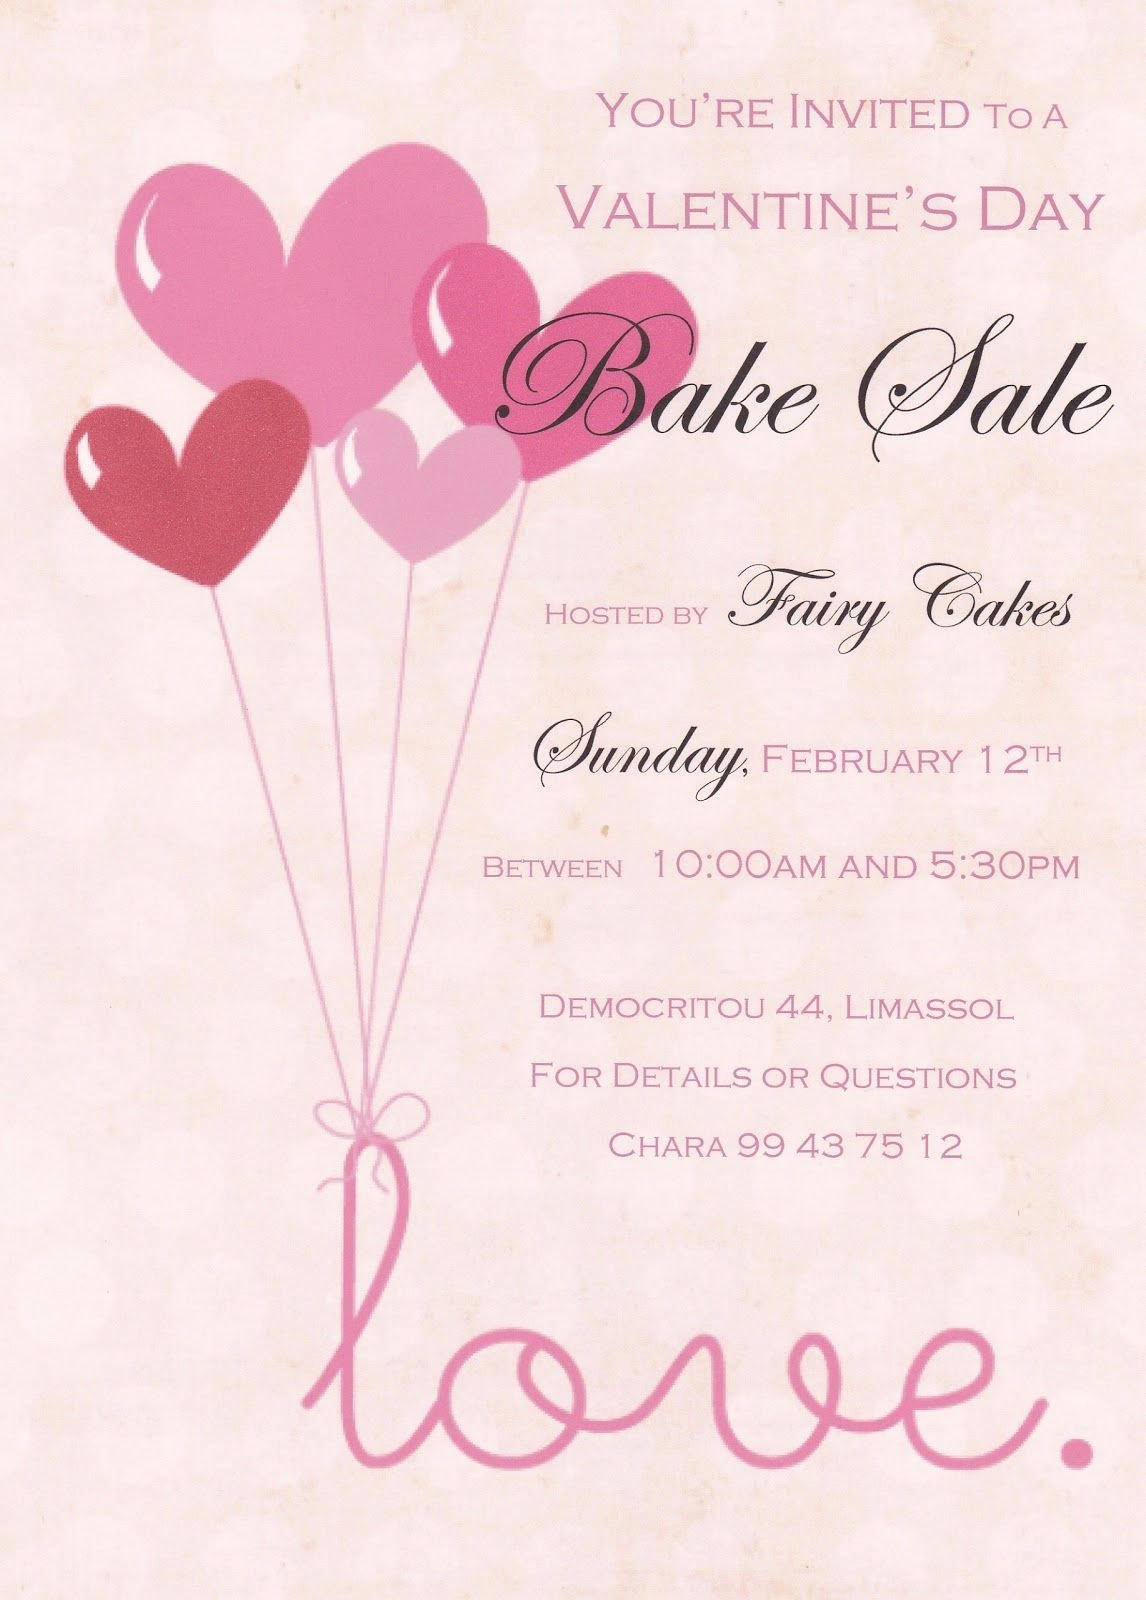 Free Printable Bake Sale Flyers Inspirational Valentine Bake Sale Flyer Flyers